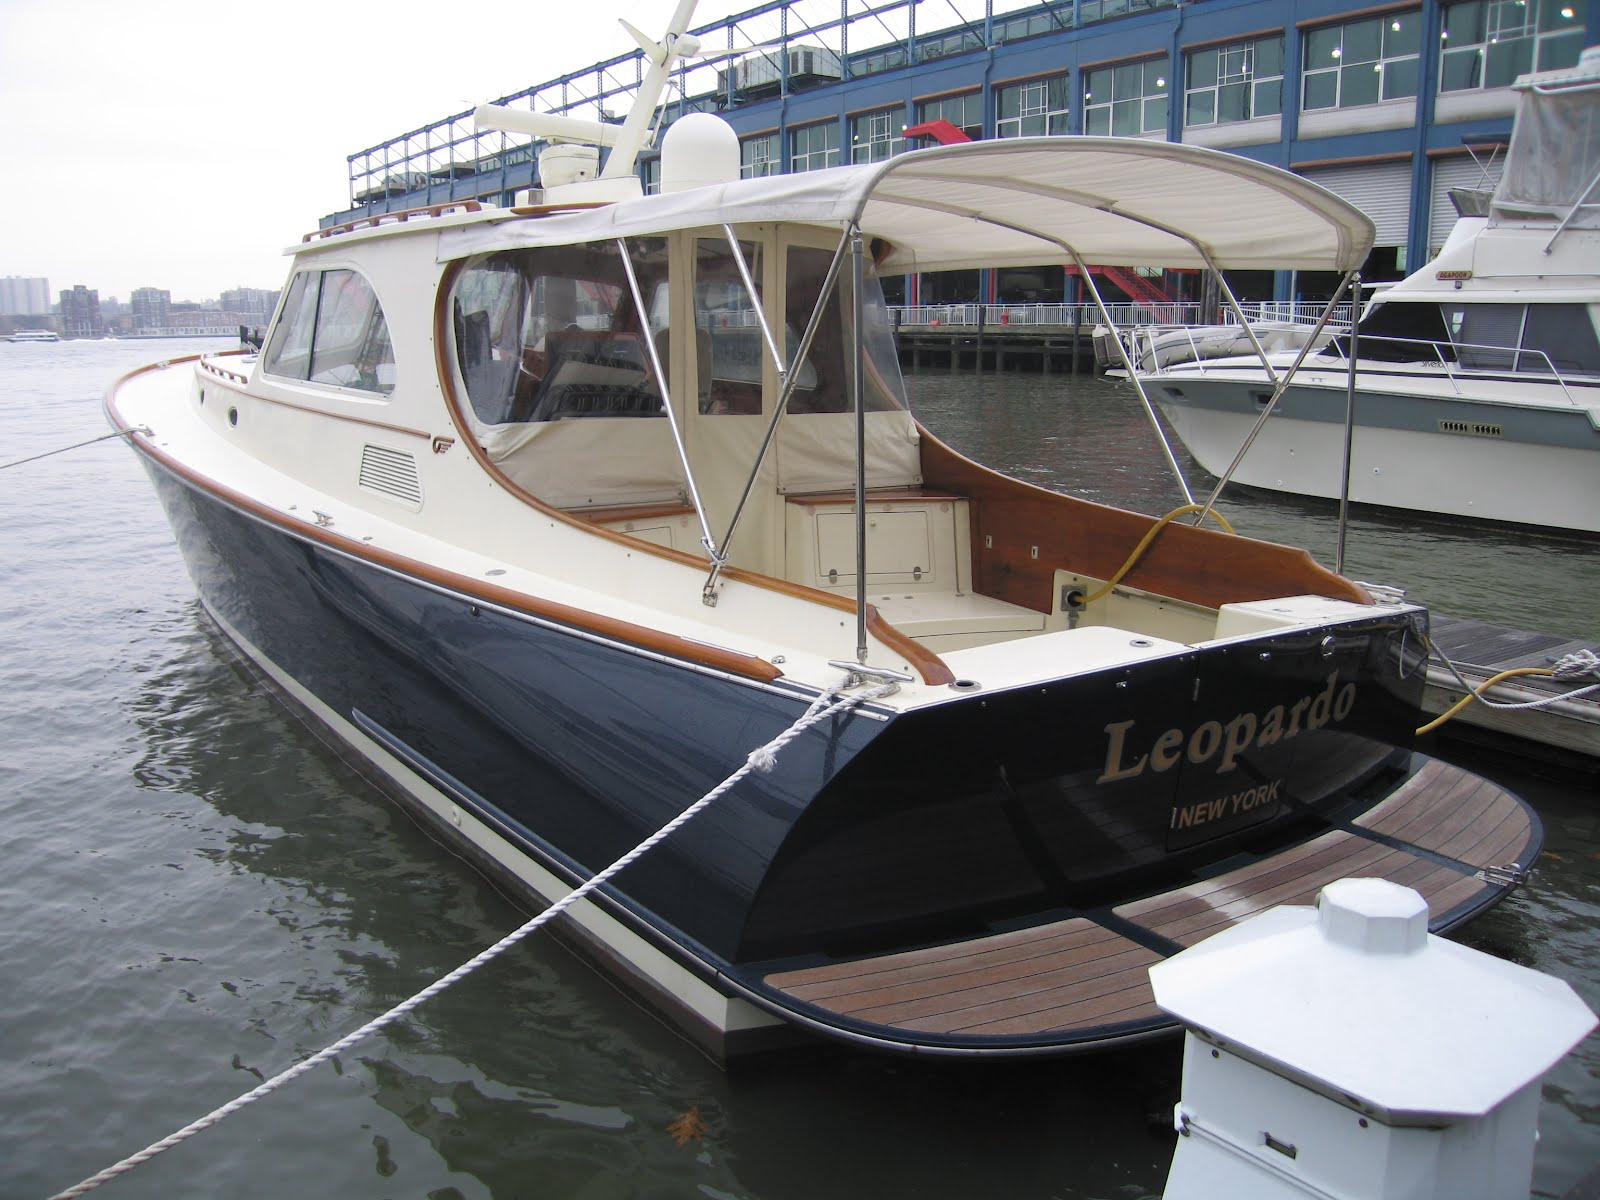 The Talaria 44 was designed by Bruce King and built by the Hinckley Company.